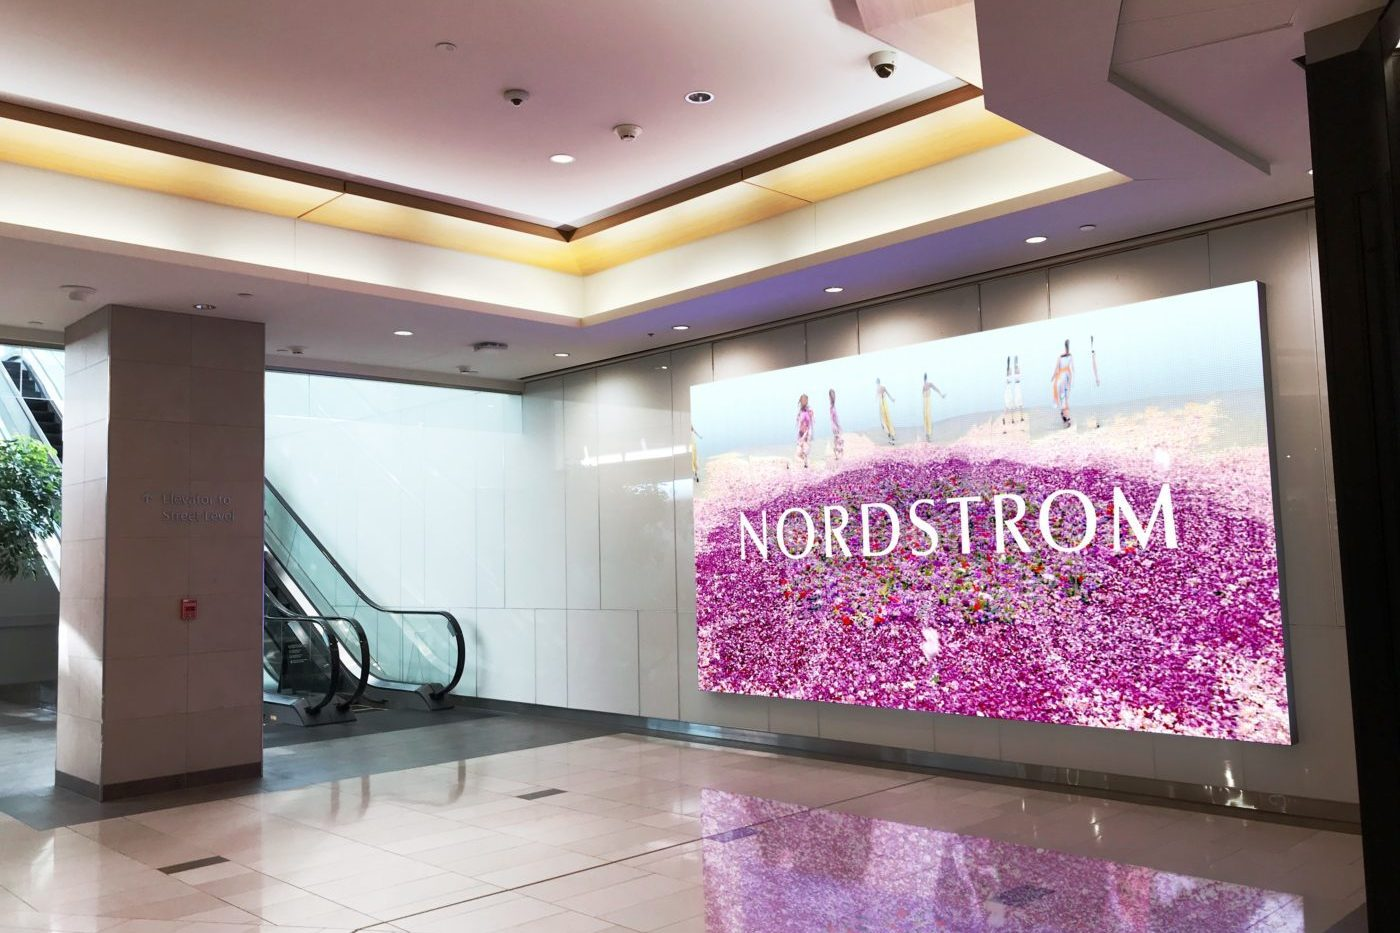 Nordstrom - Malls - CF Pacific Centre - Digital Video Wall (Vancouver, British Columbia)